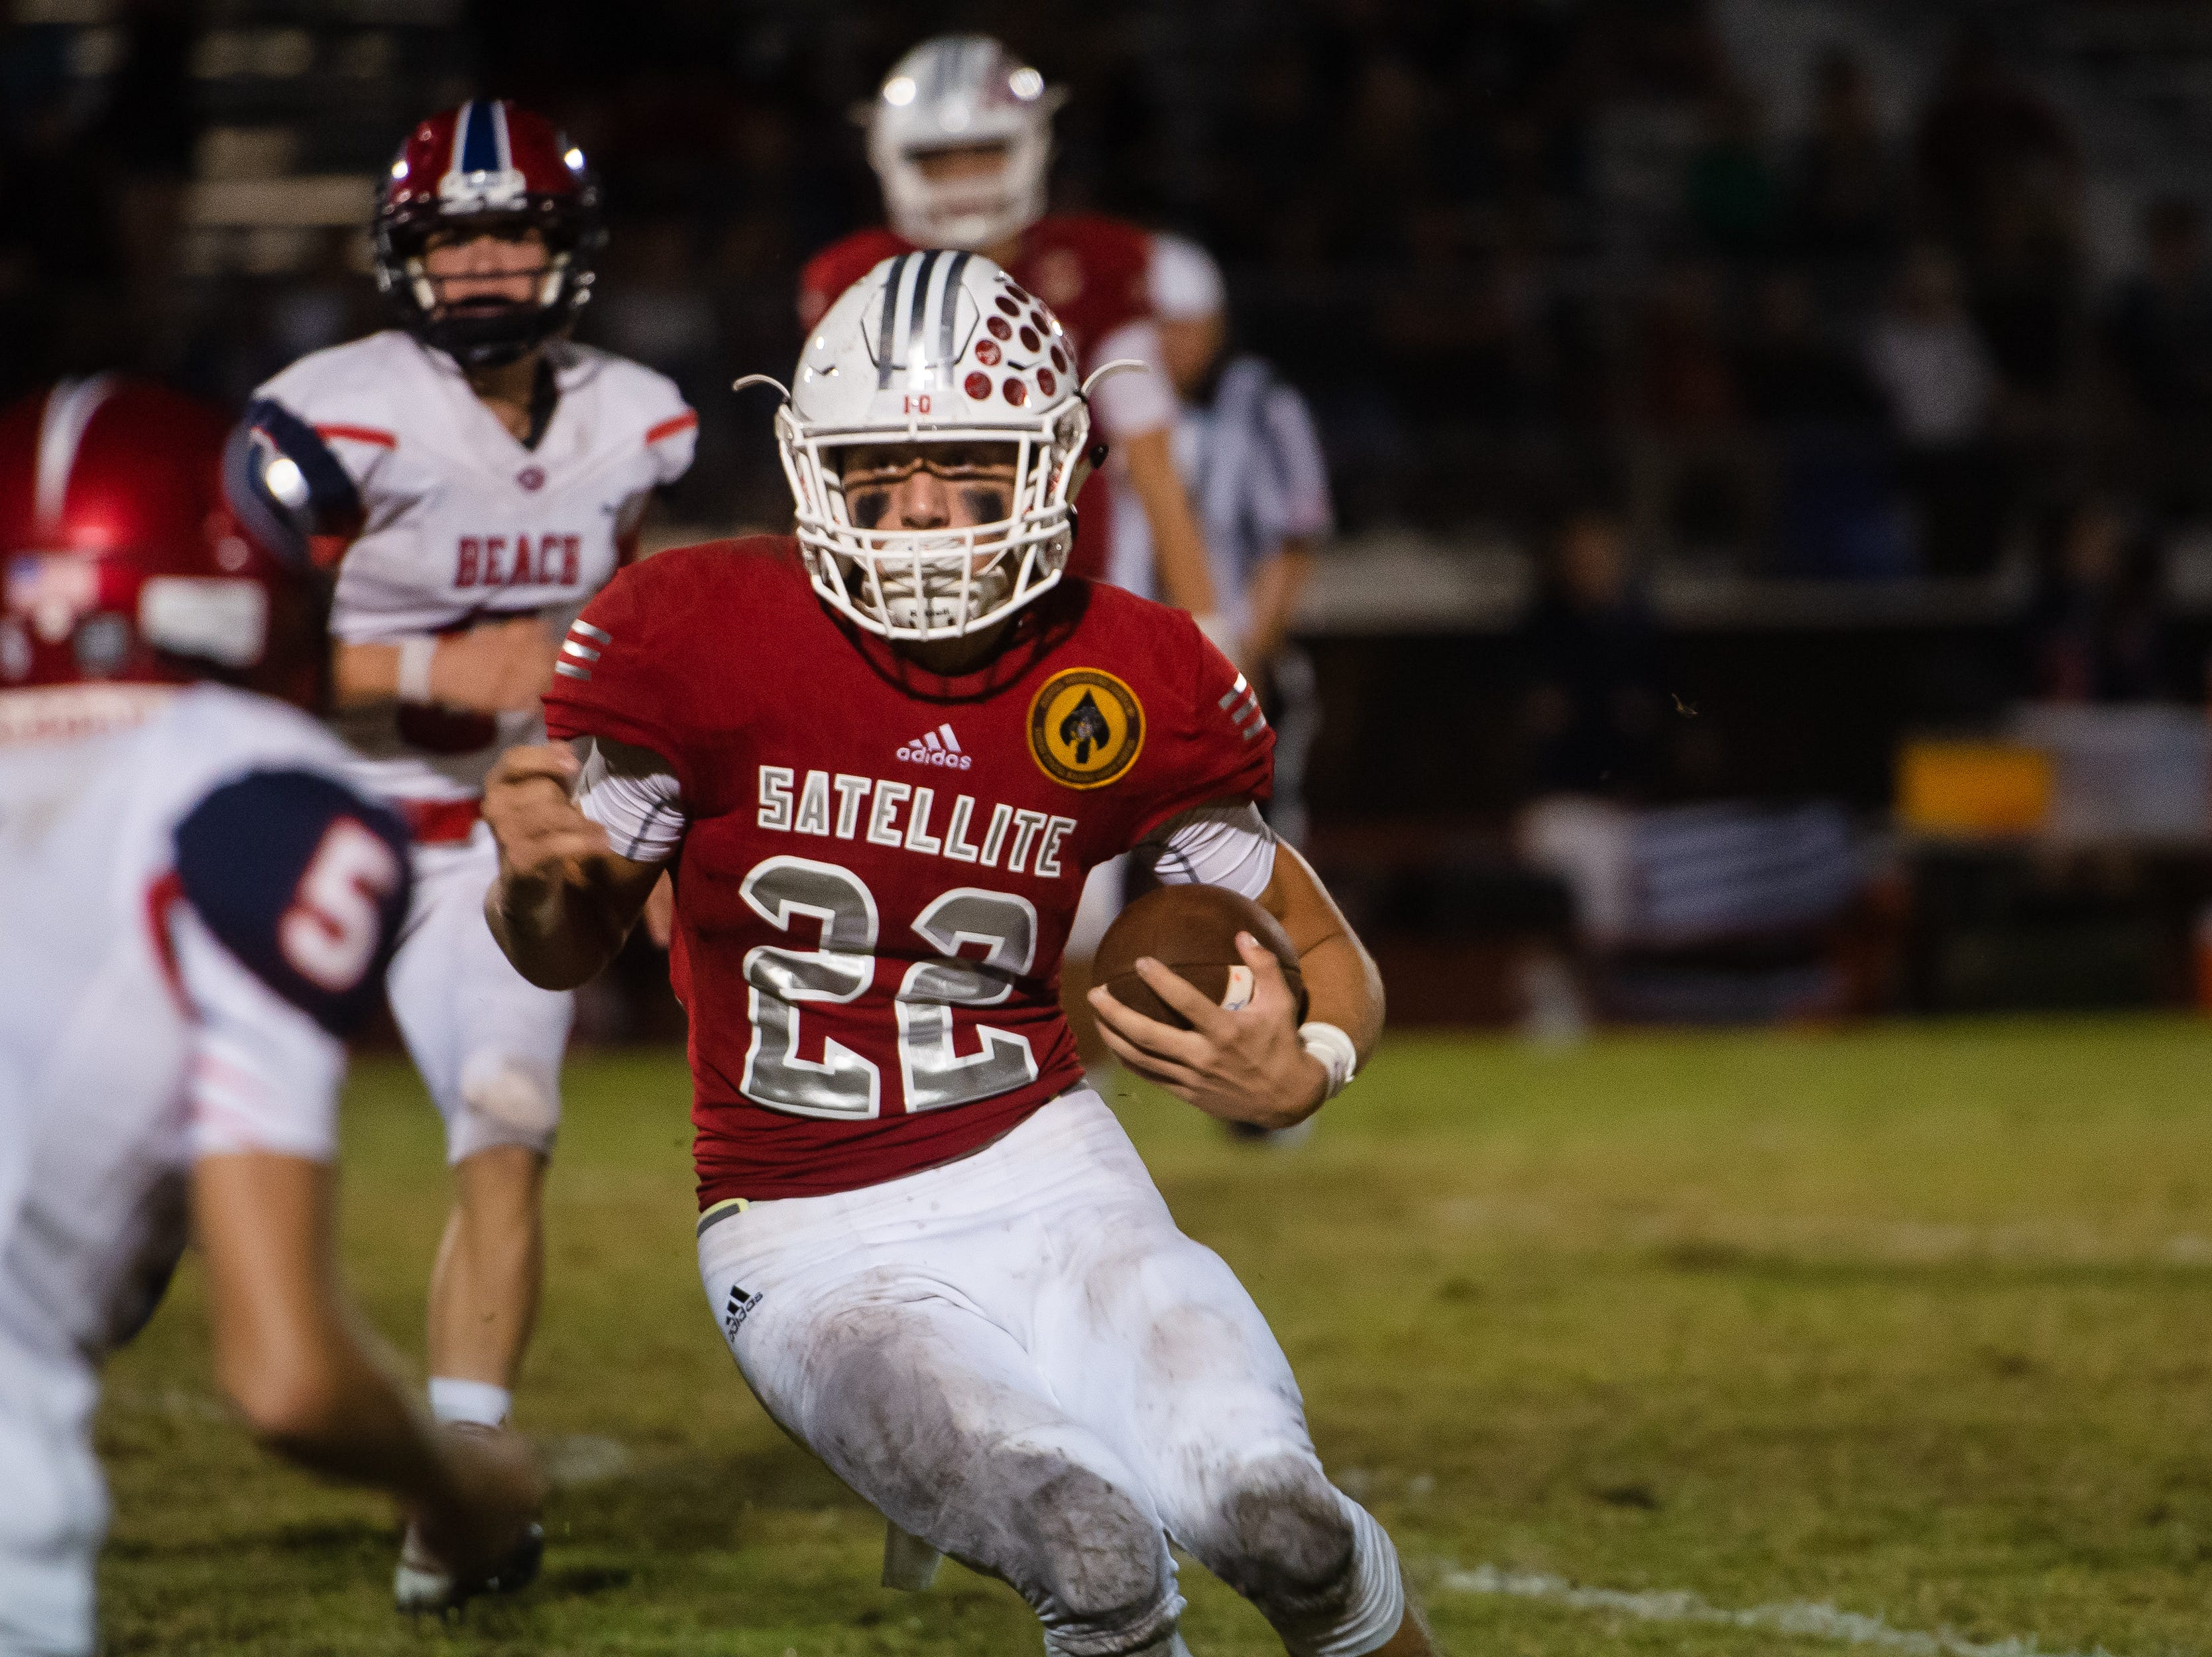 Satellite High's Max Hinkell carries the ball for Satellite during the game against Cocoa Beach.